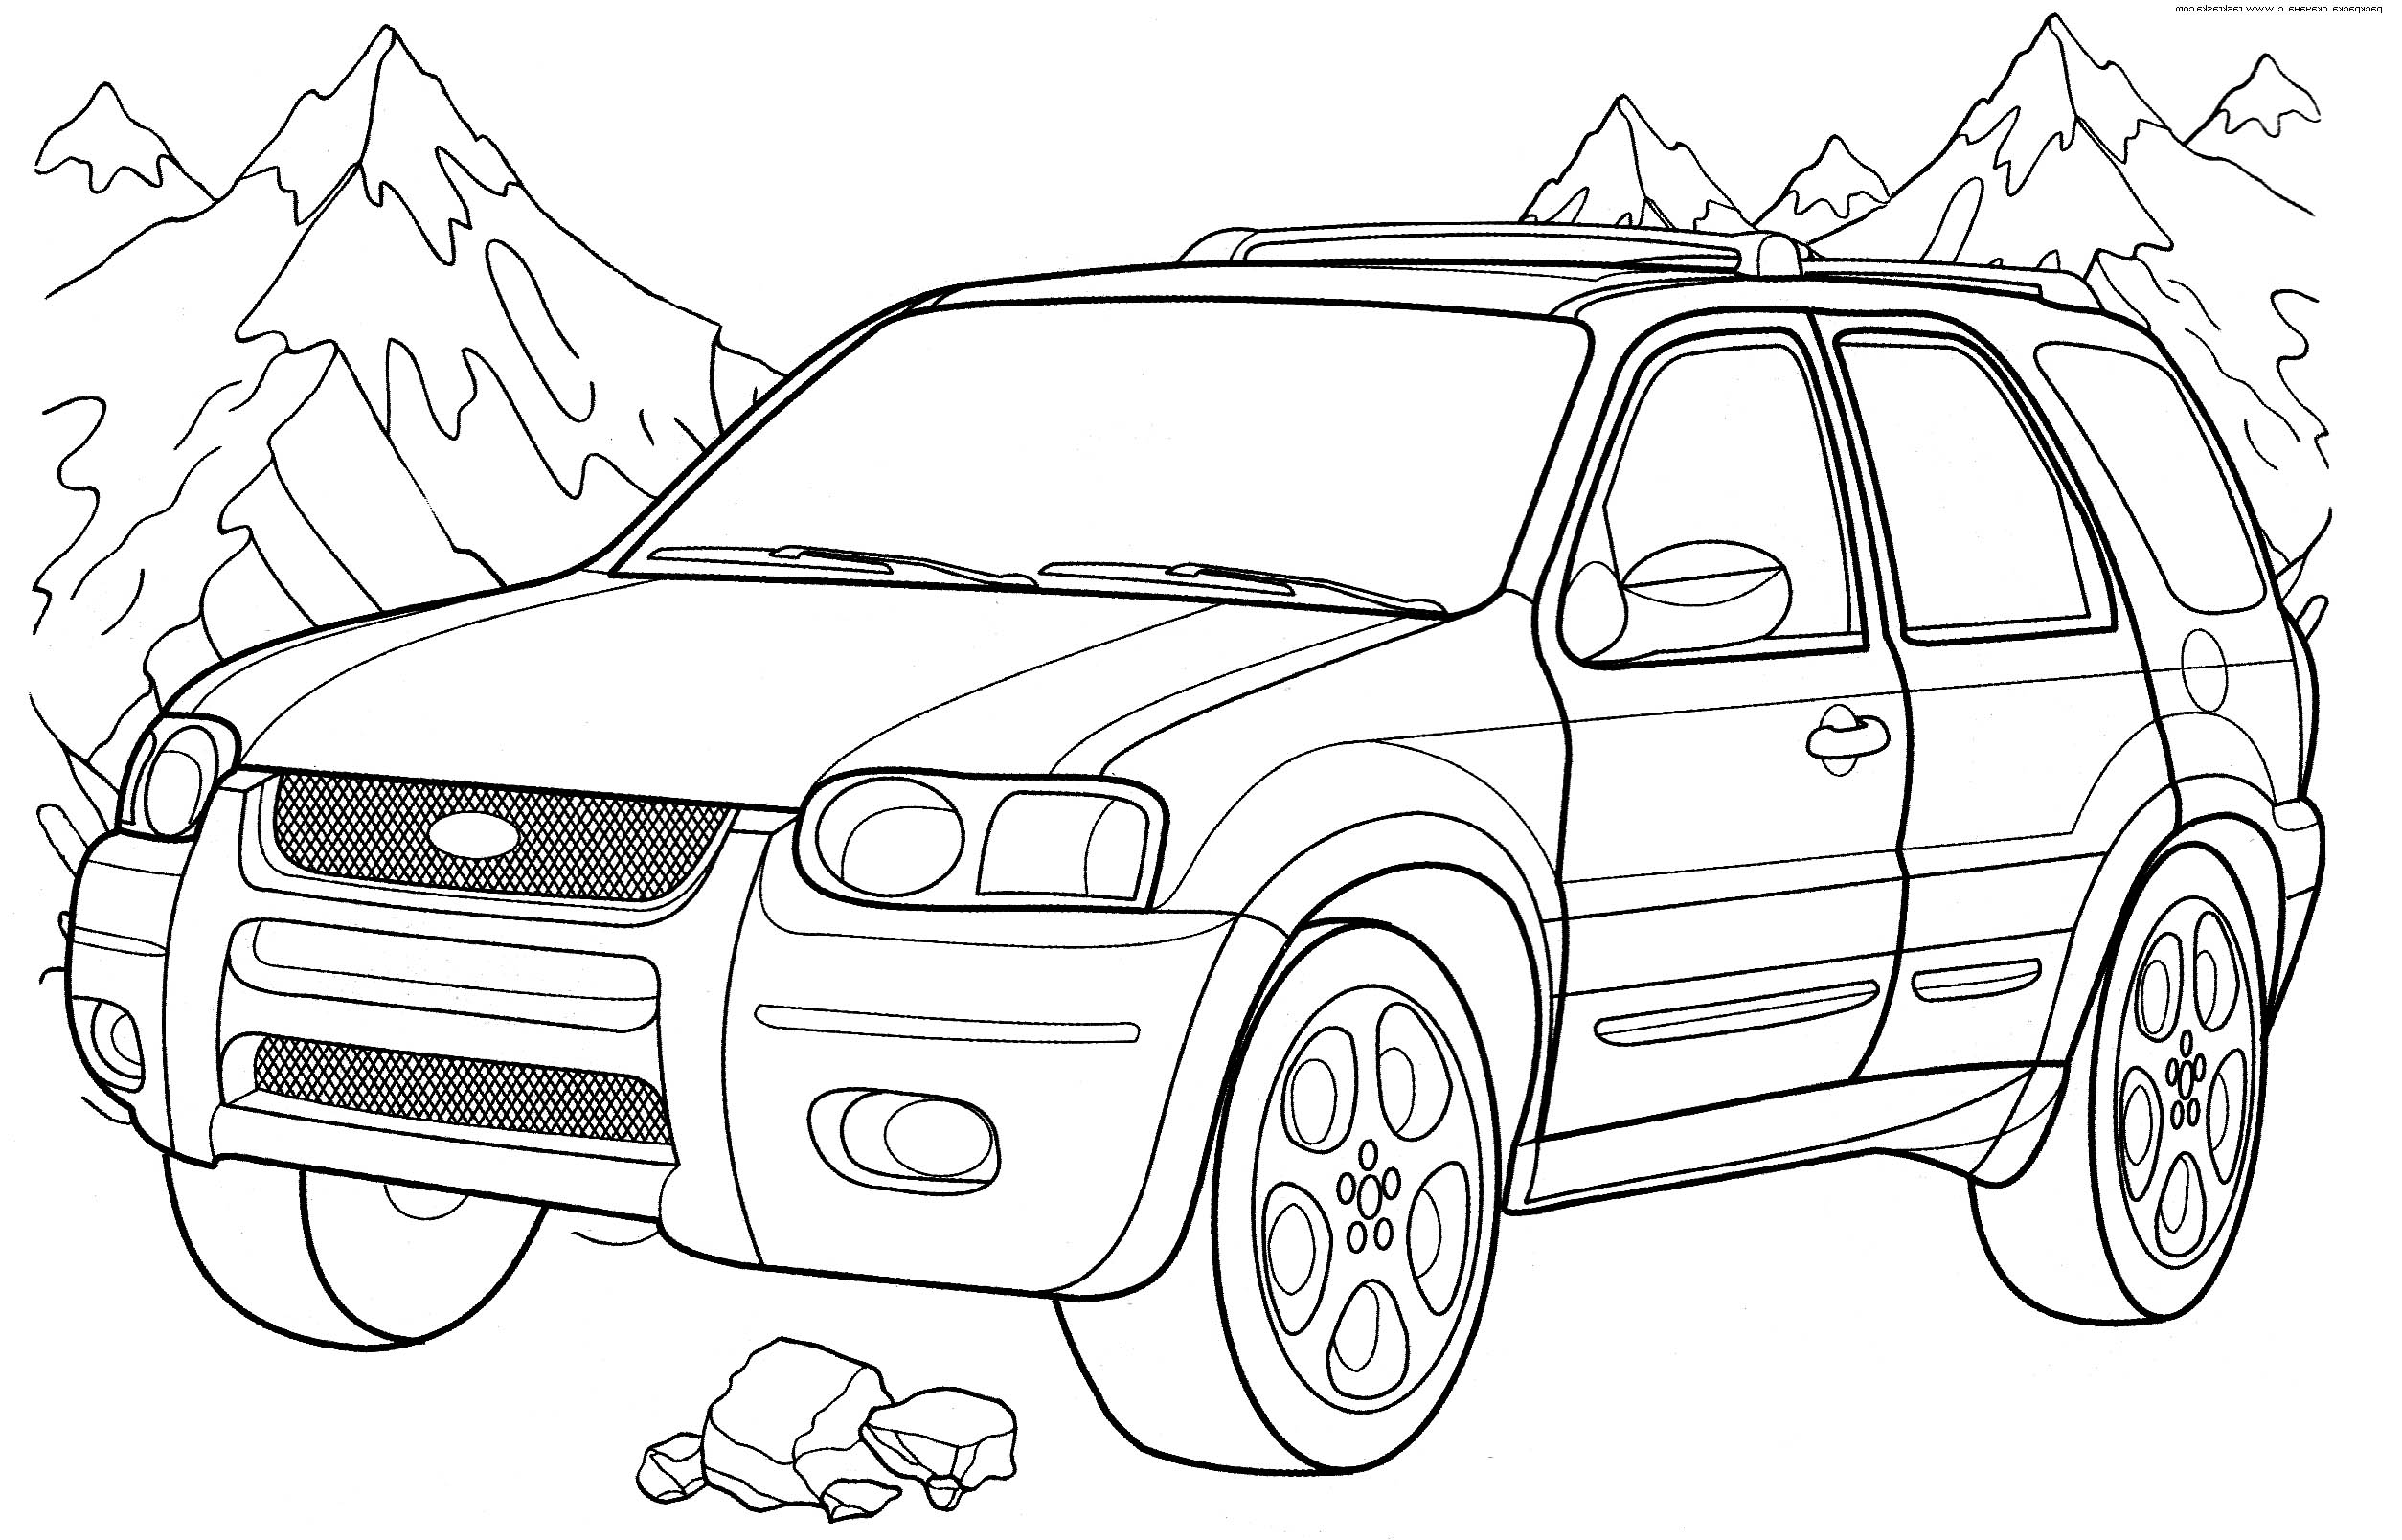 coloring pages for boys cars free printable pixar cars coloring pages coloring pages for cars pages boys coloring